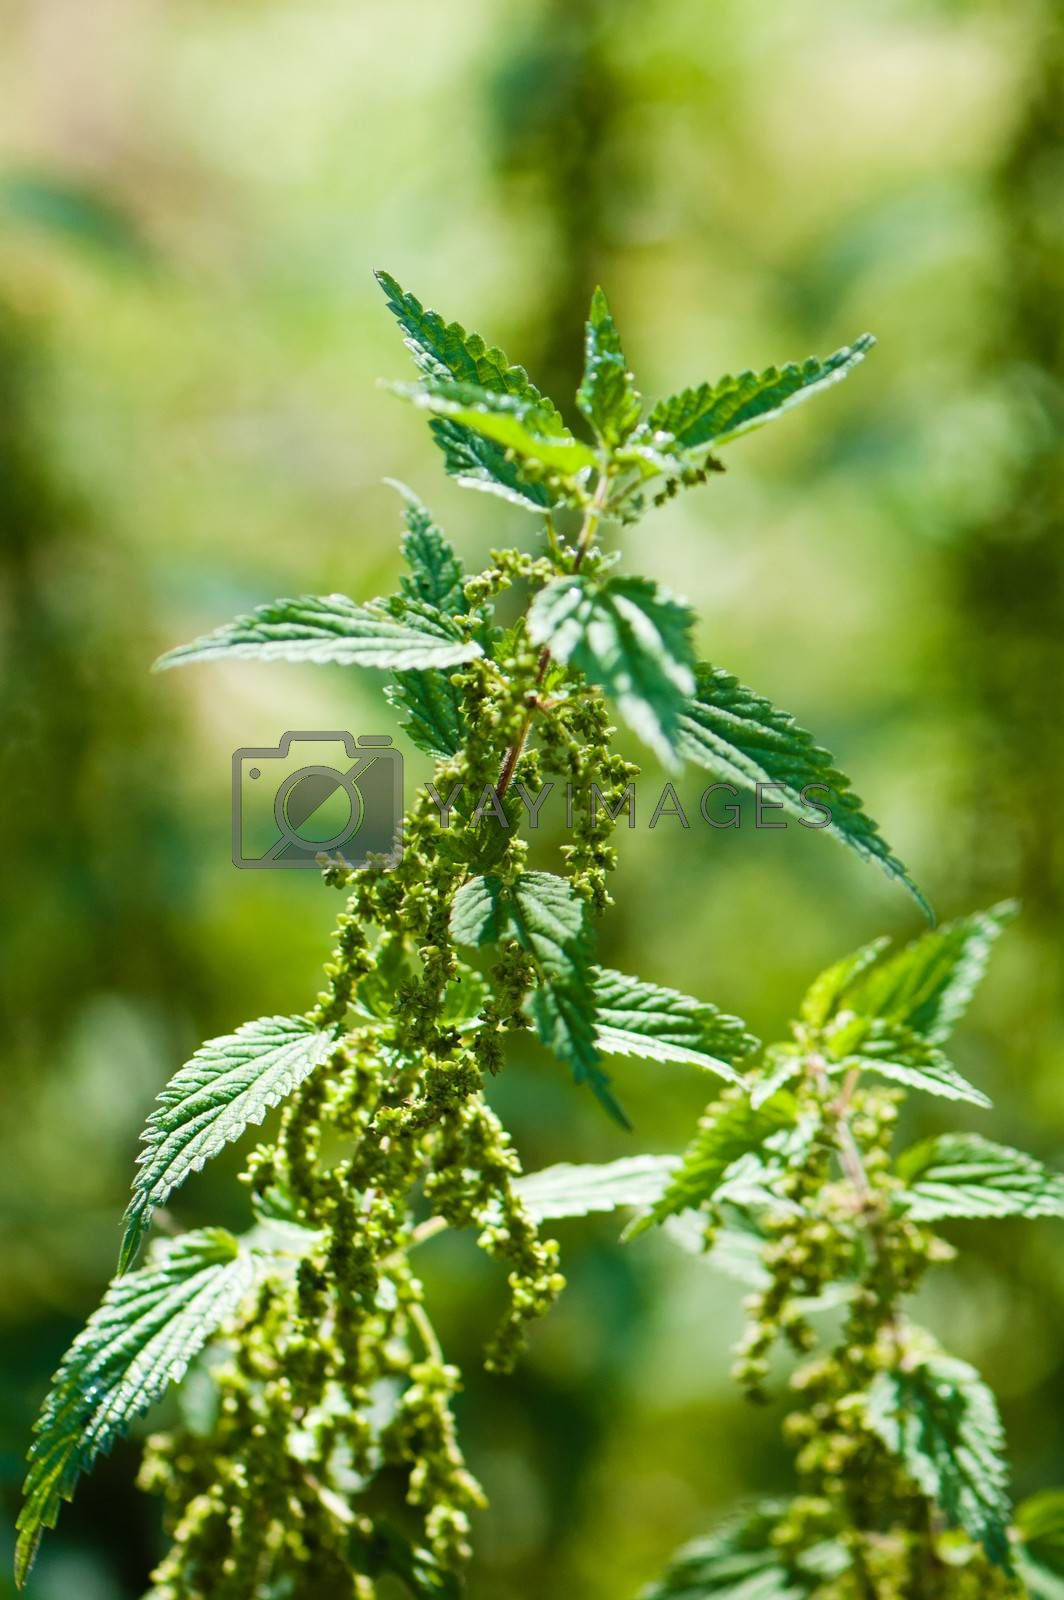 Nettle, close up